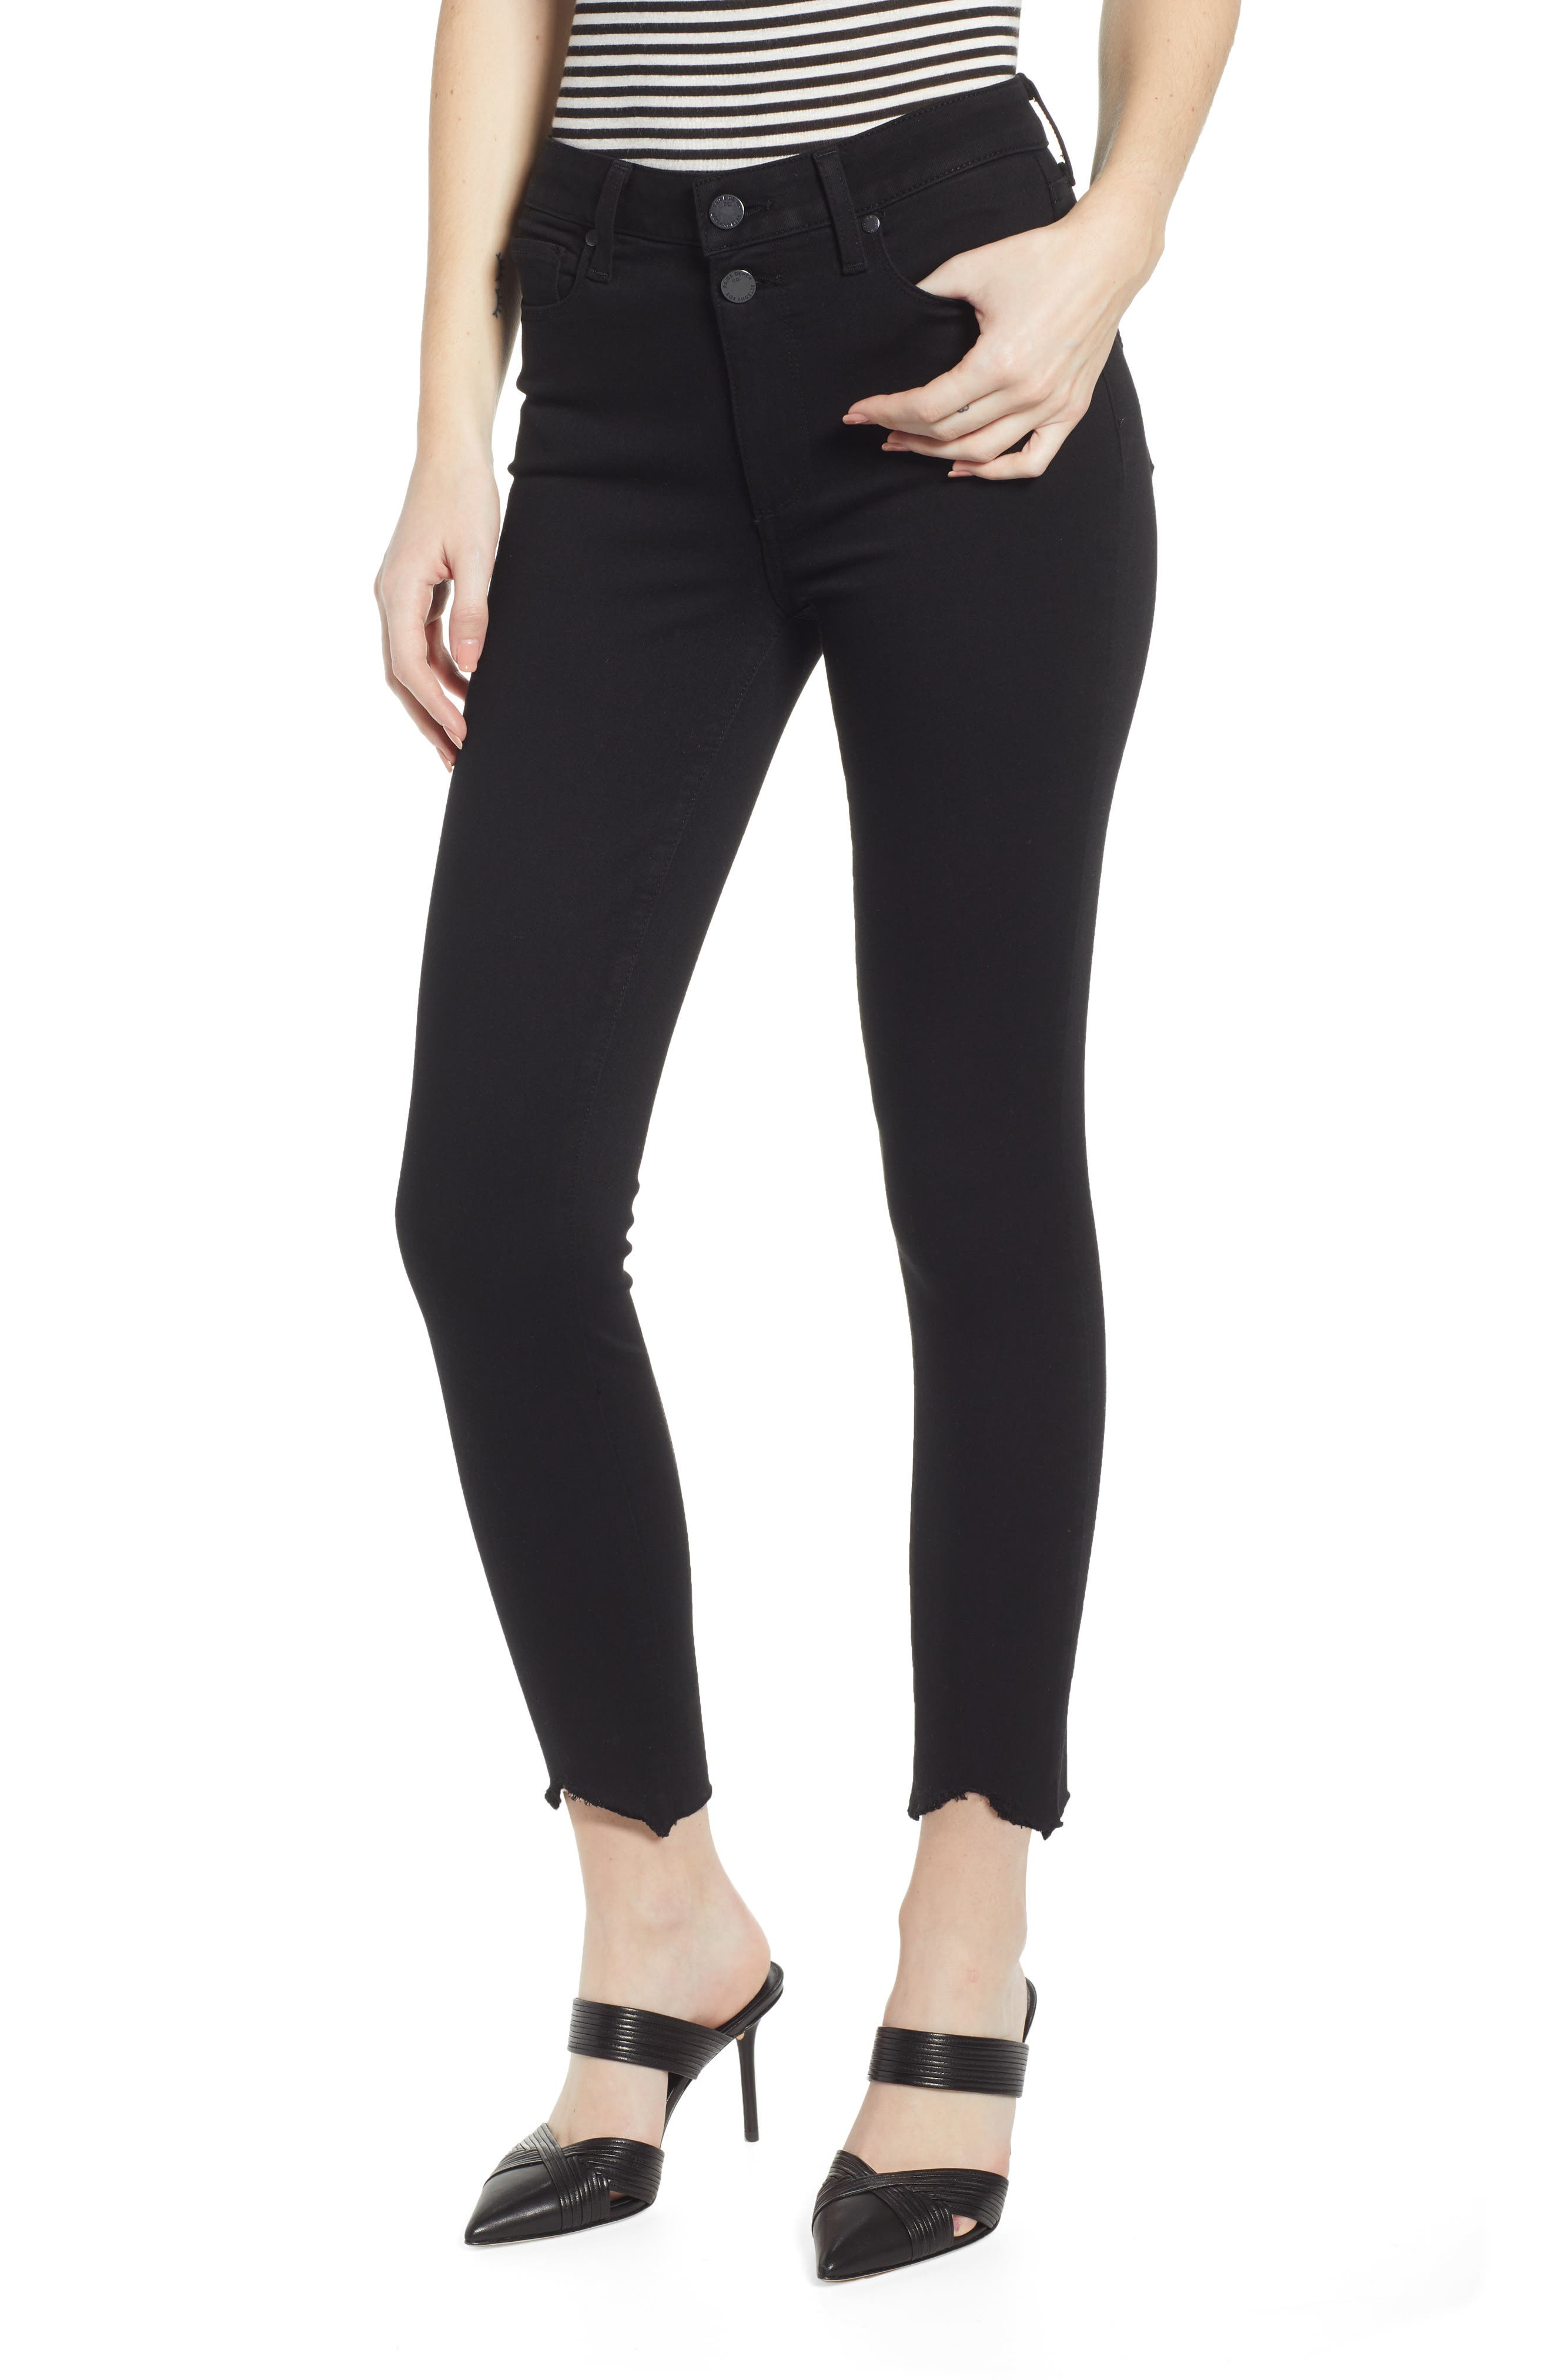 Paige Jeans TRANSCEND - HOXTON HIGH WAIST CROP SKINNY JEANS